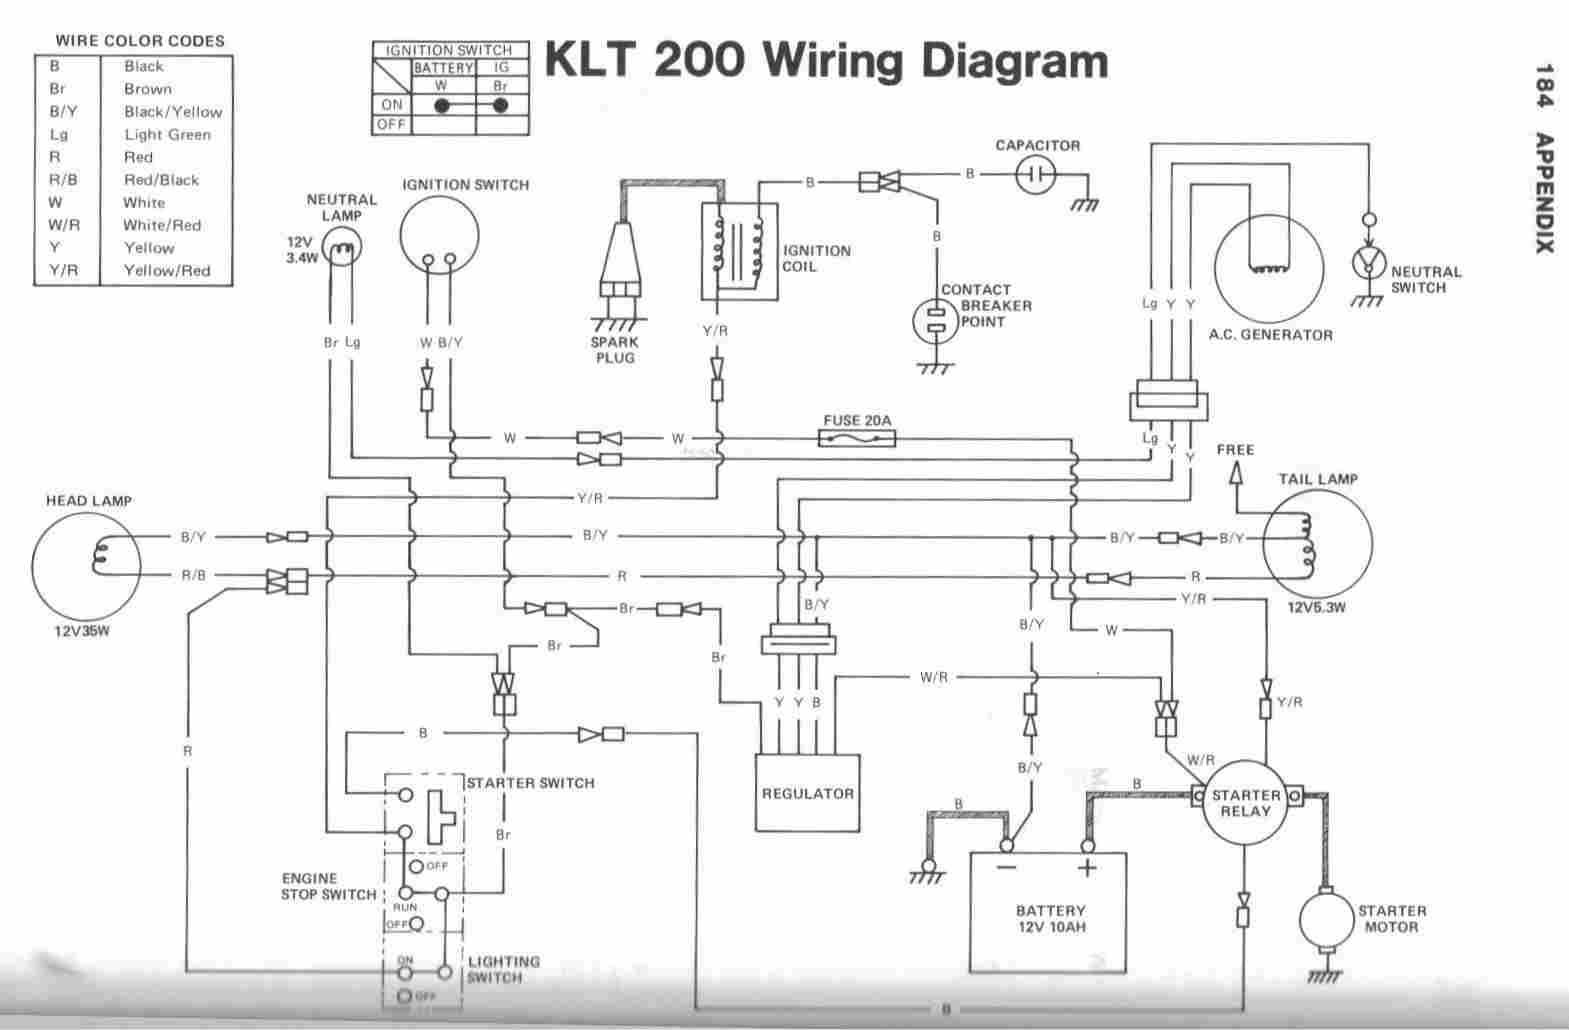 residential electrical wiring diagrams pdf easy routing cool ideas rh pinterest com residential electrical wiring diagrams pdf basic residential electrical wiring diagrams